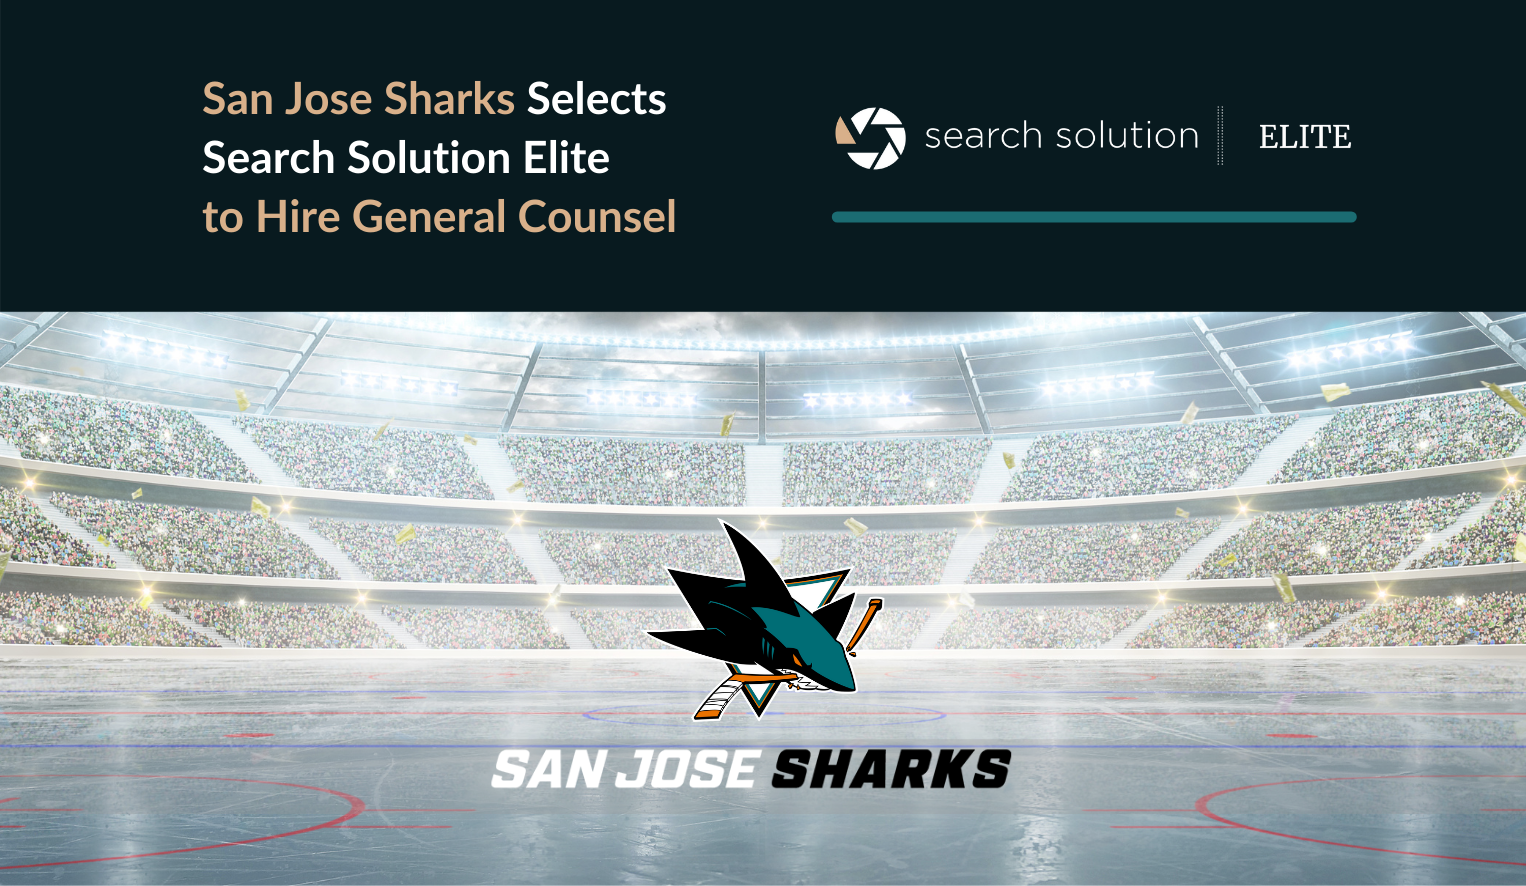 San Jose Sharks Selects Search Solution Elite to Hire General Counsel